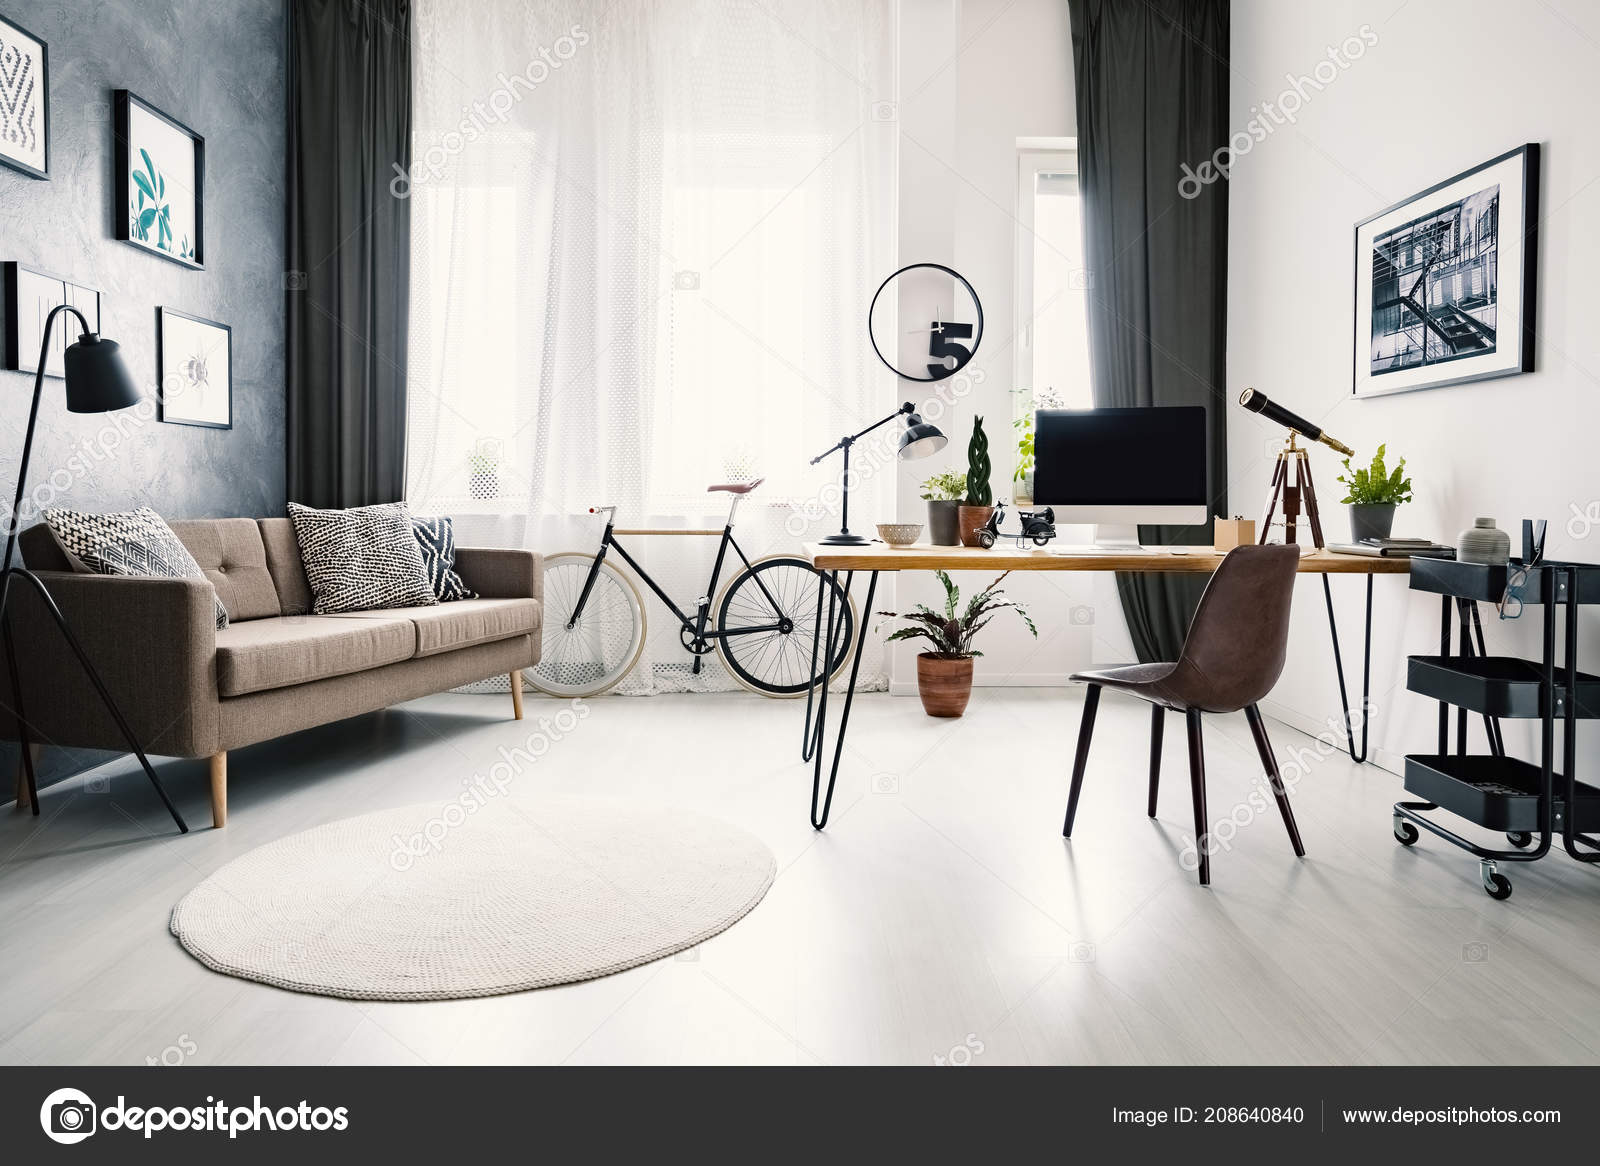 Sofa In Home Office Modern Home Office Interior Big Window Sofa Bike Desk